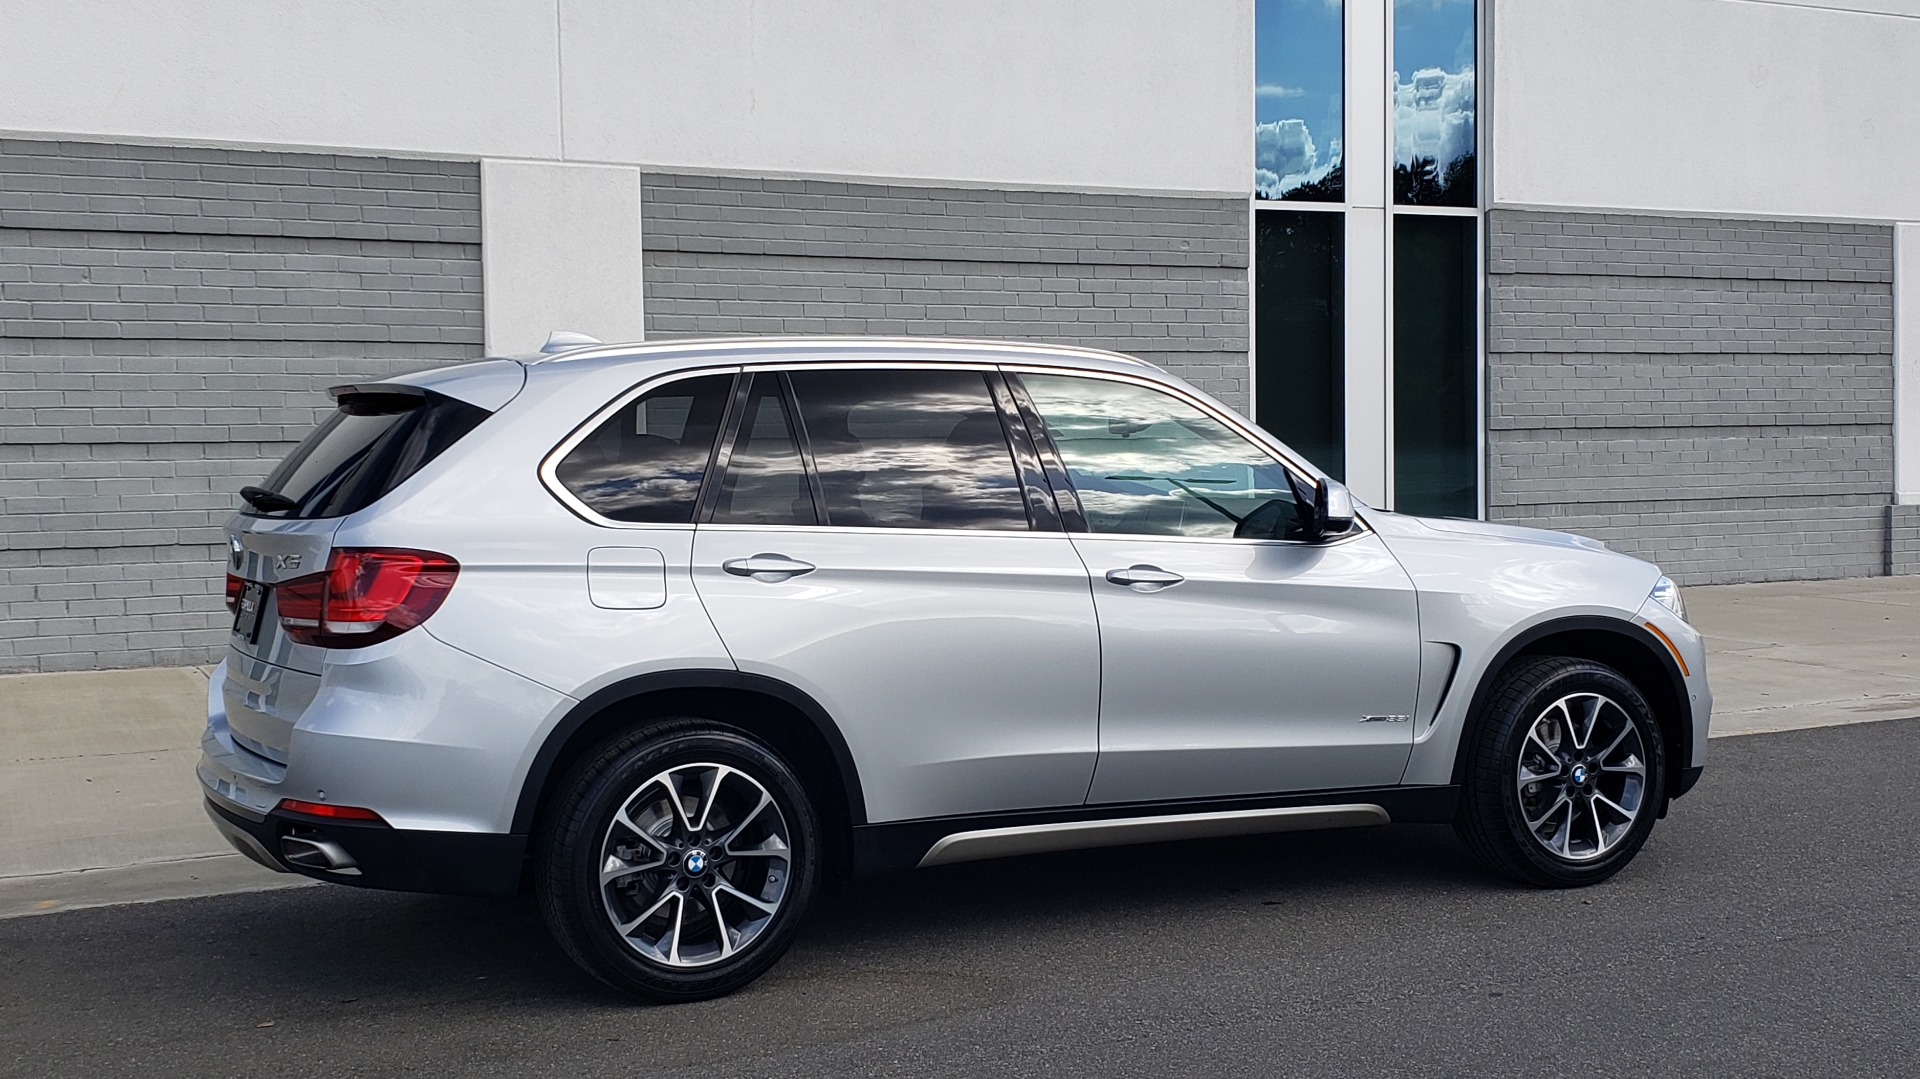 Used 2018 BMW X5 XDRIVE35I PREMIUM / NAV / PANO-ROOF / DRIVER ASST / REARVIEW for sale Sold at Formula Imports in Charlotte NC 28227 8